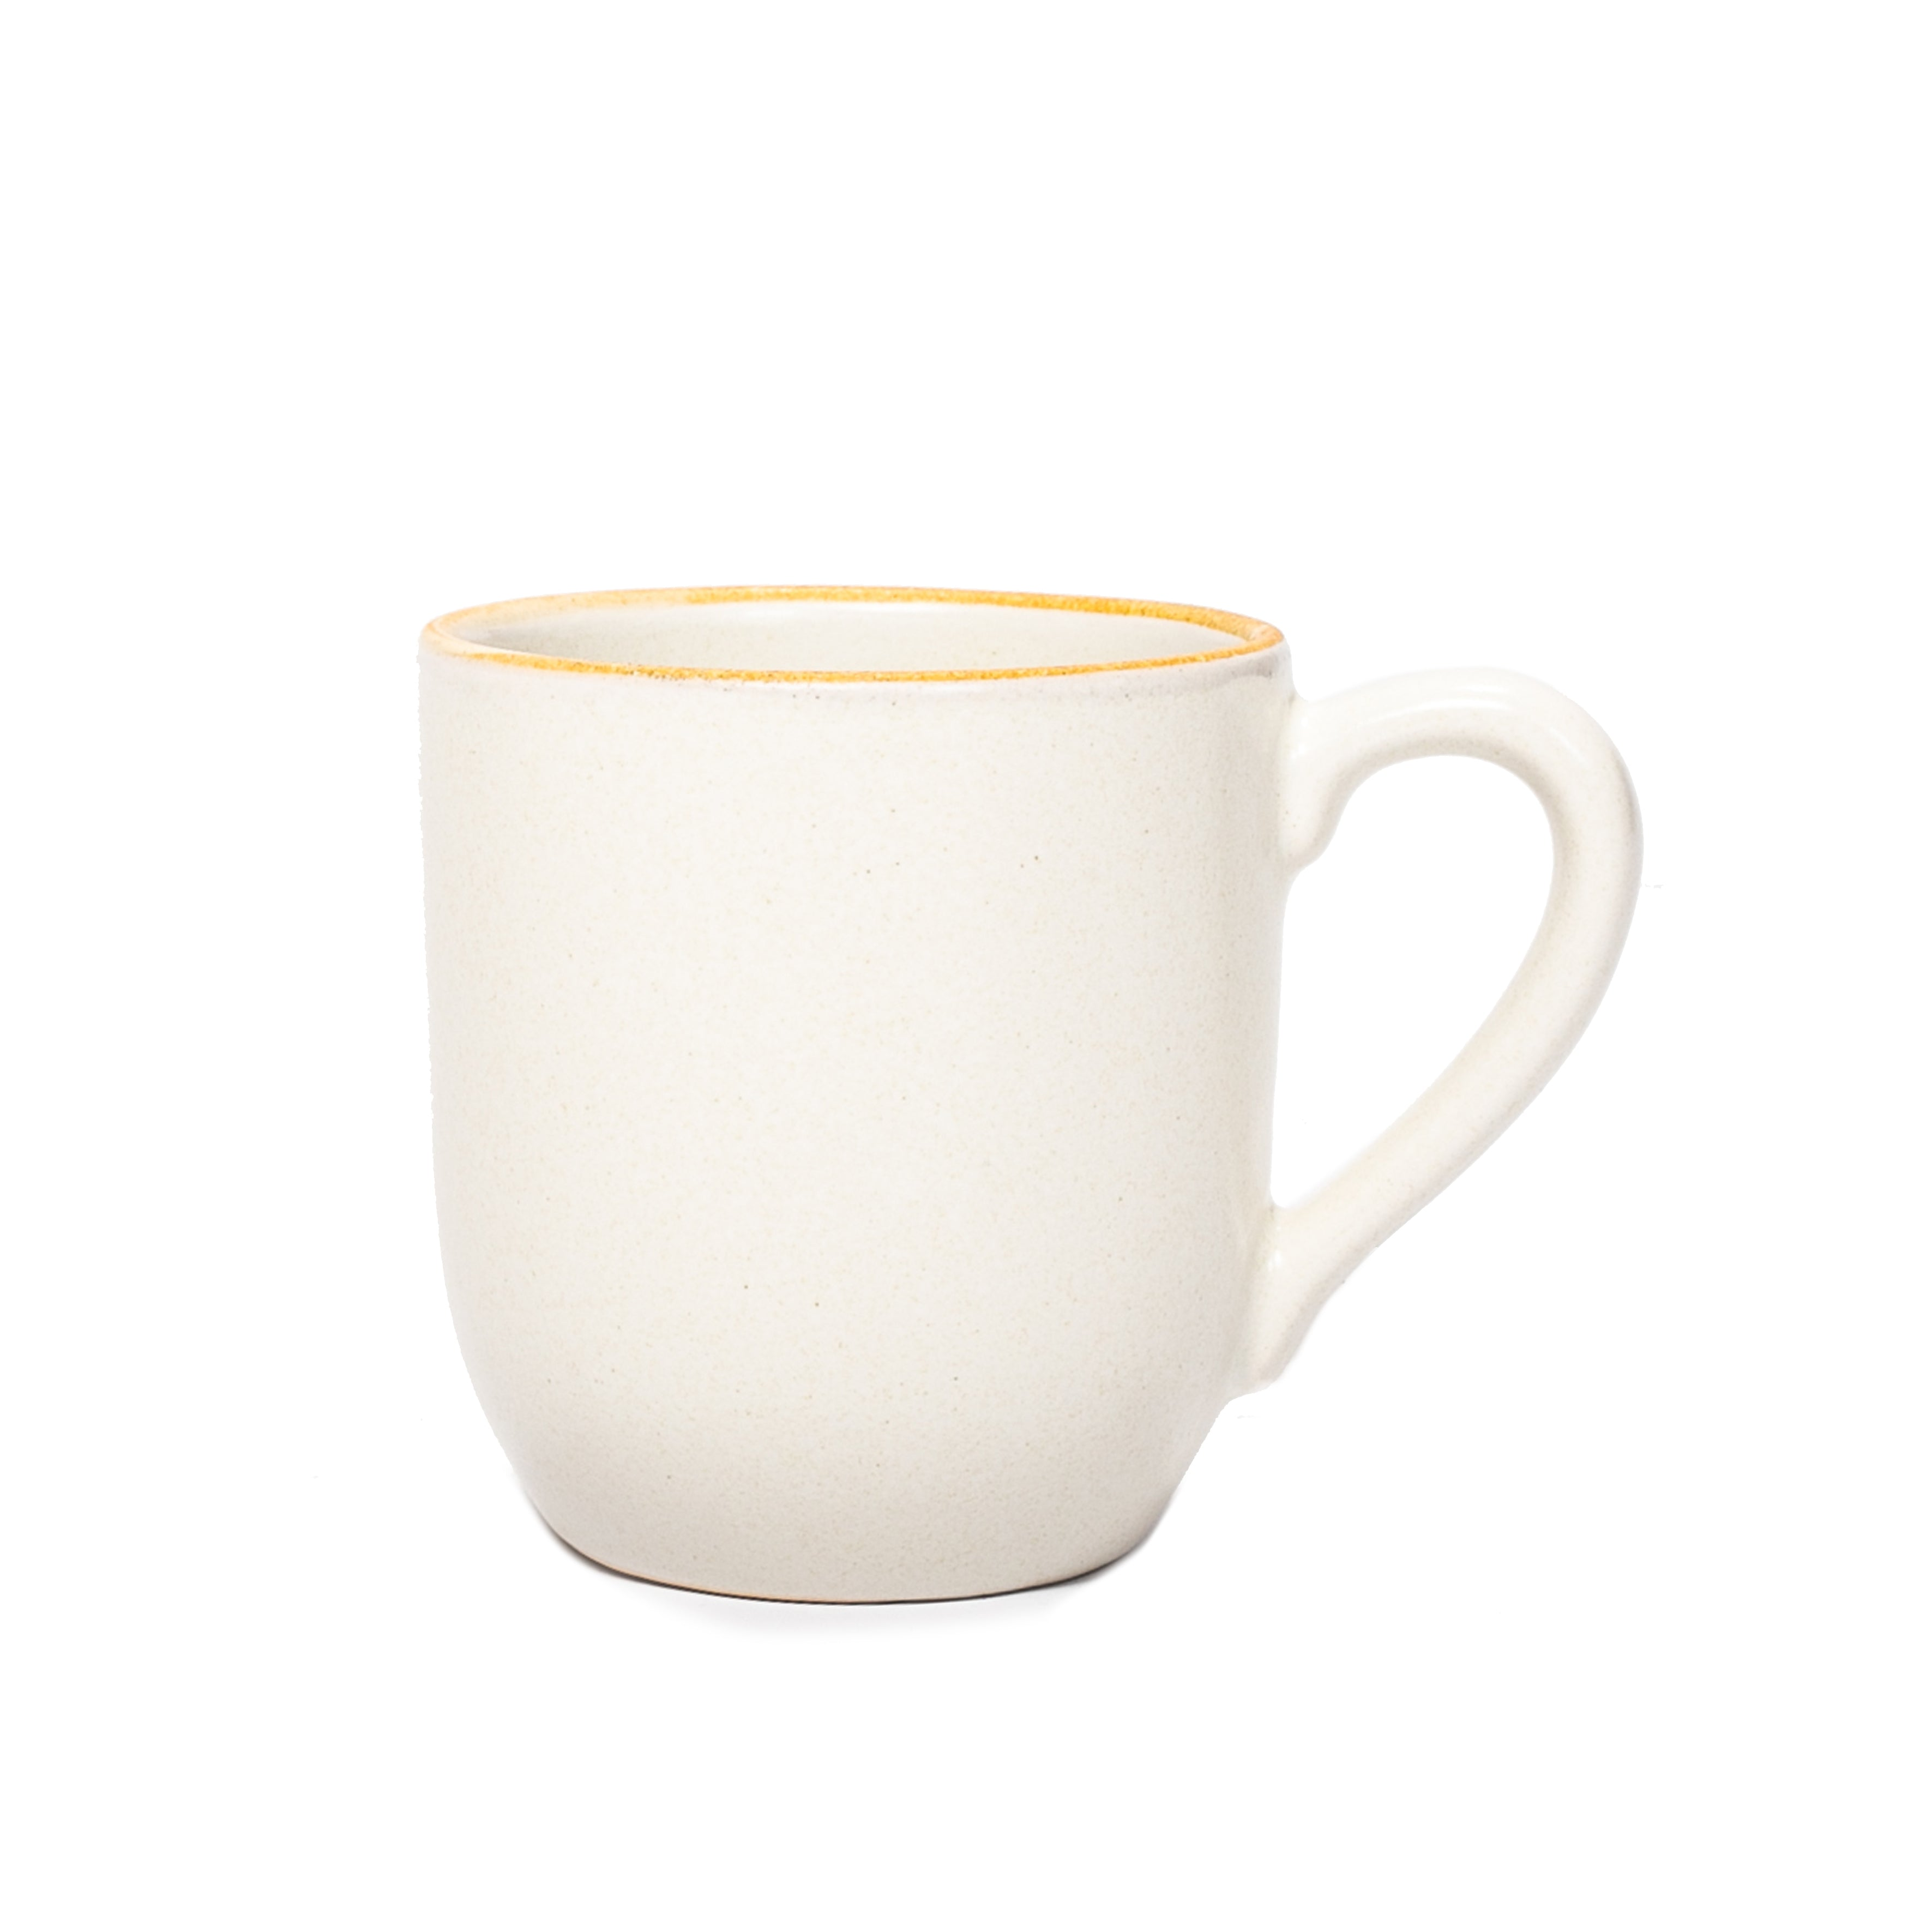 Matte White With Rye Edge Mug 40cl